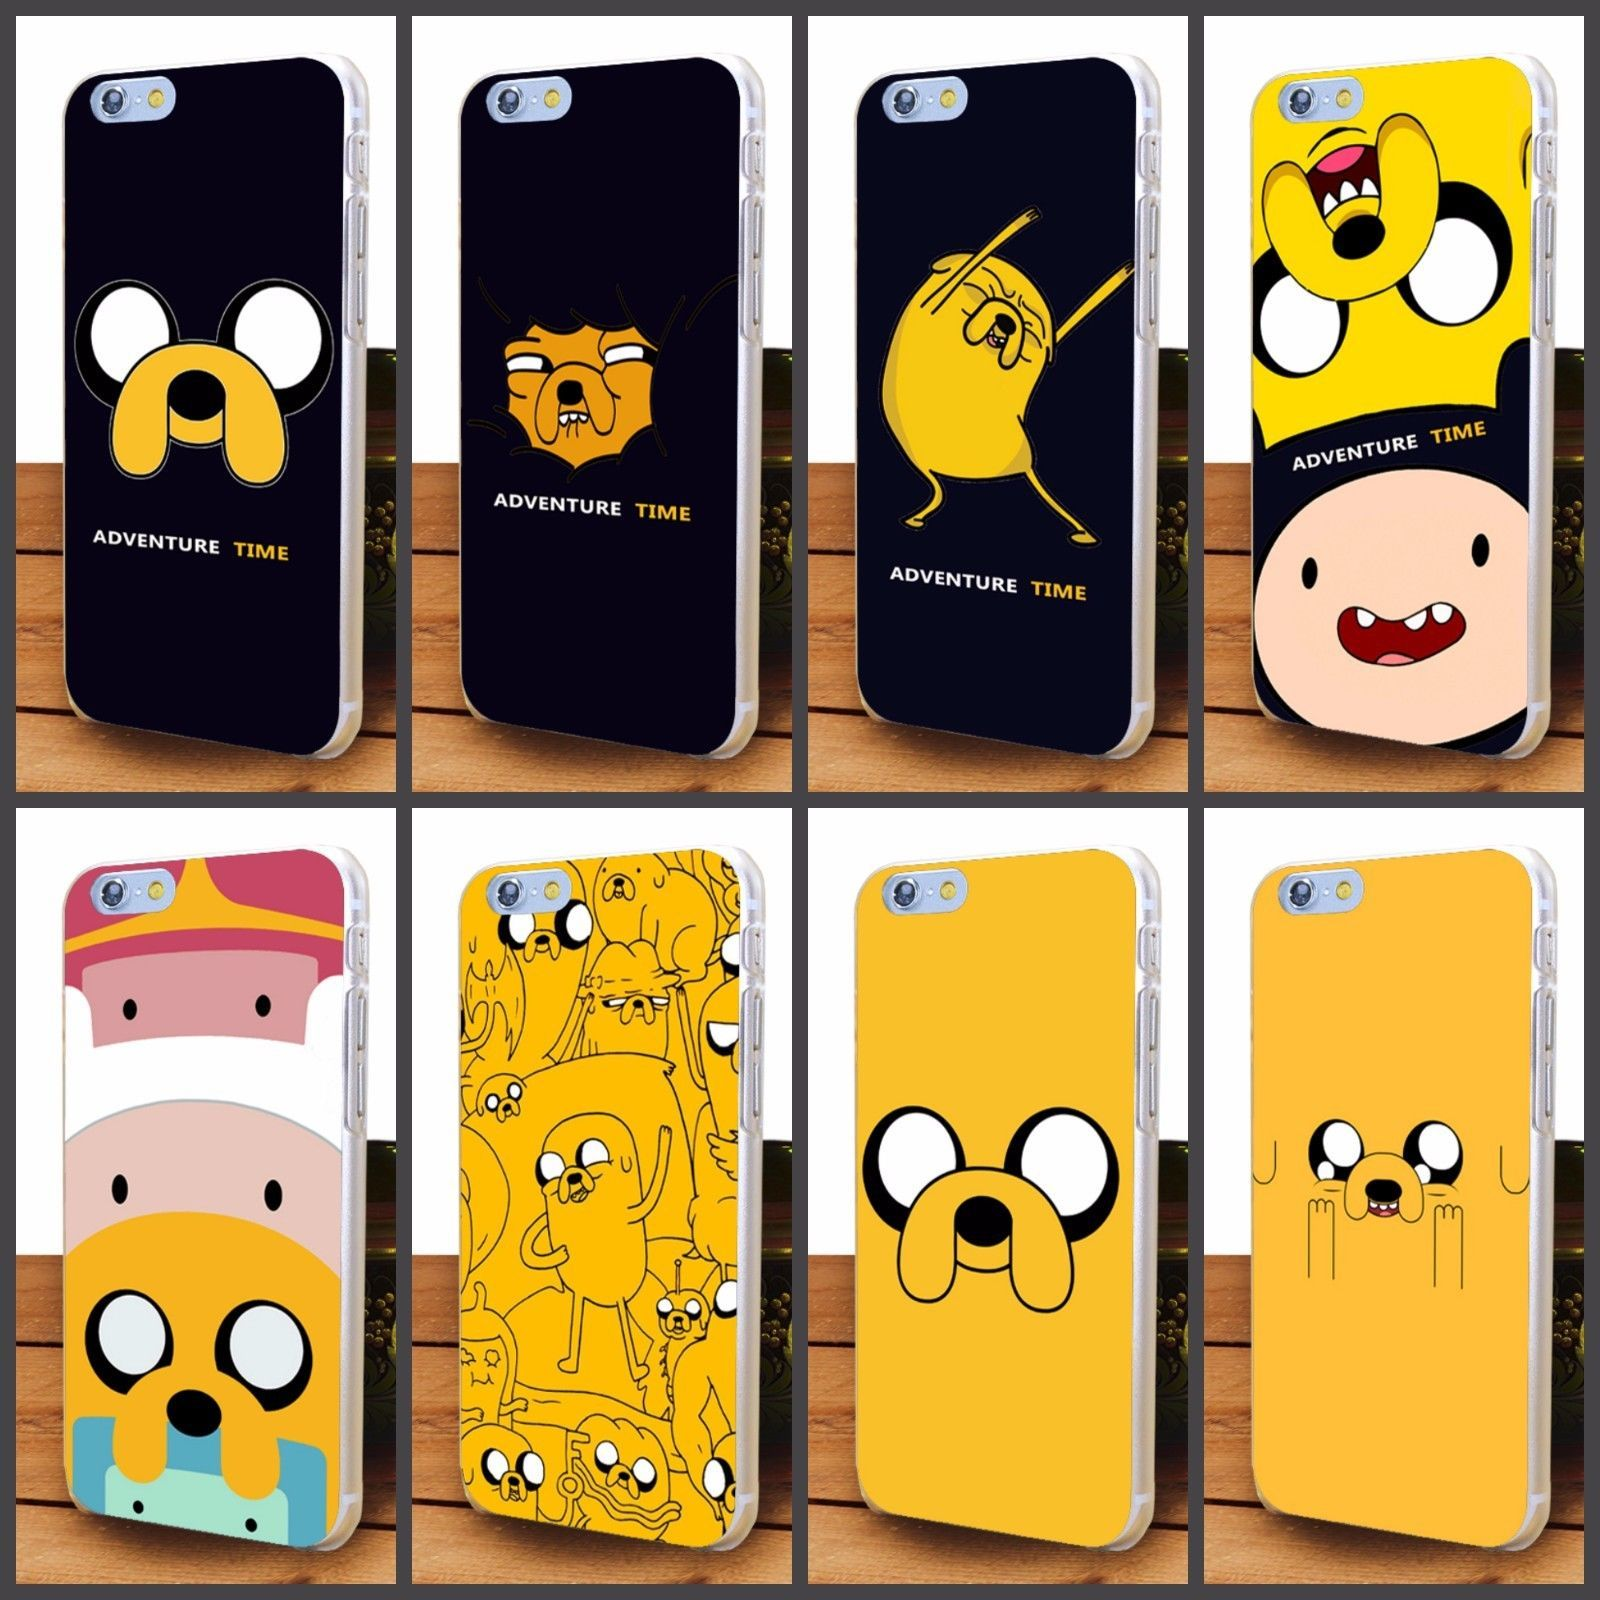 Jake And Fin Adventure Time iphone case